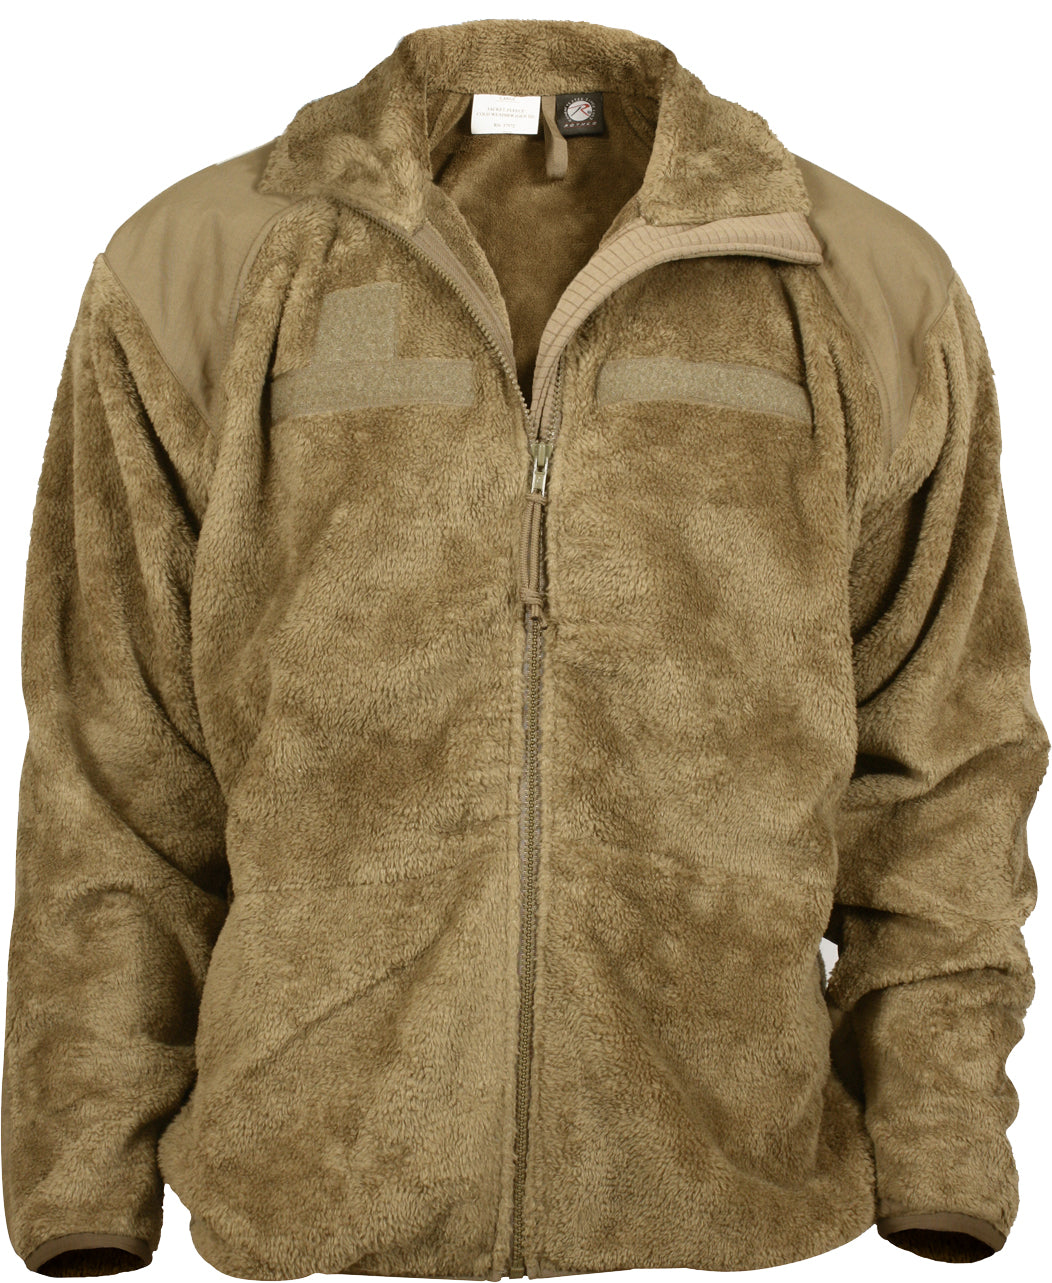 Coyote Brown - Generation III Level 3 ECWCS Polar Fleece Jacket/Liner